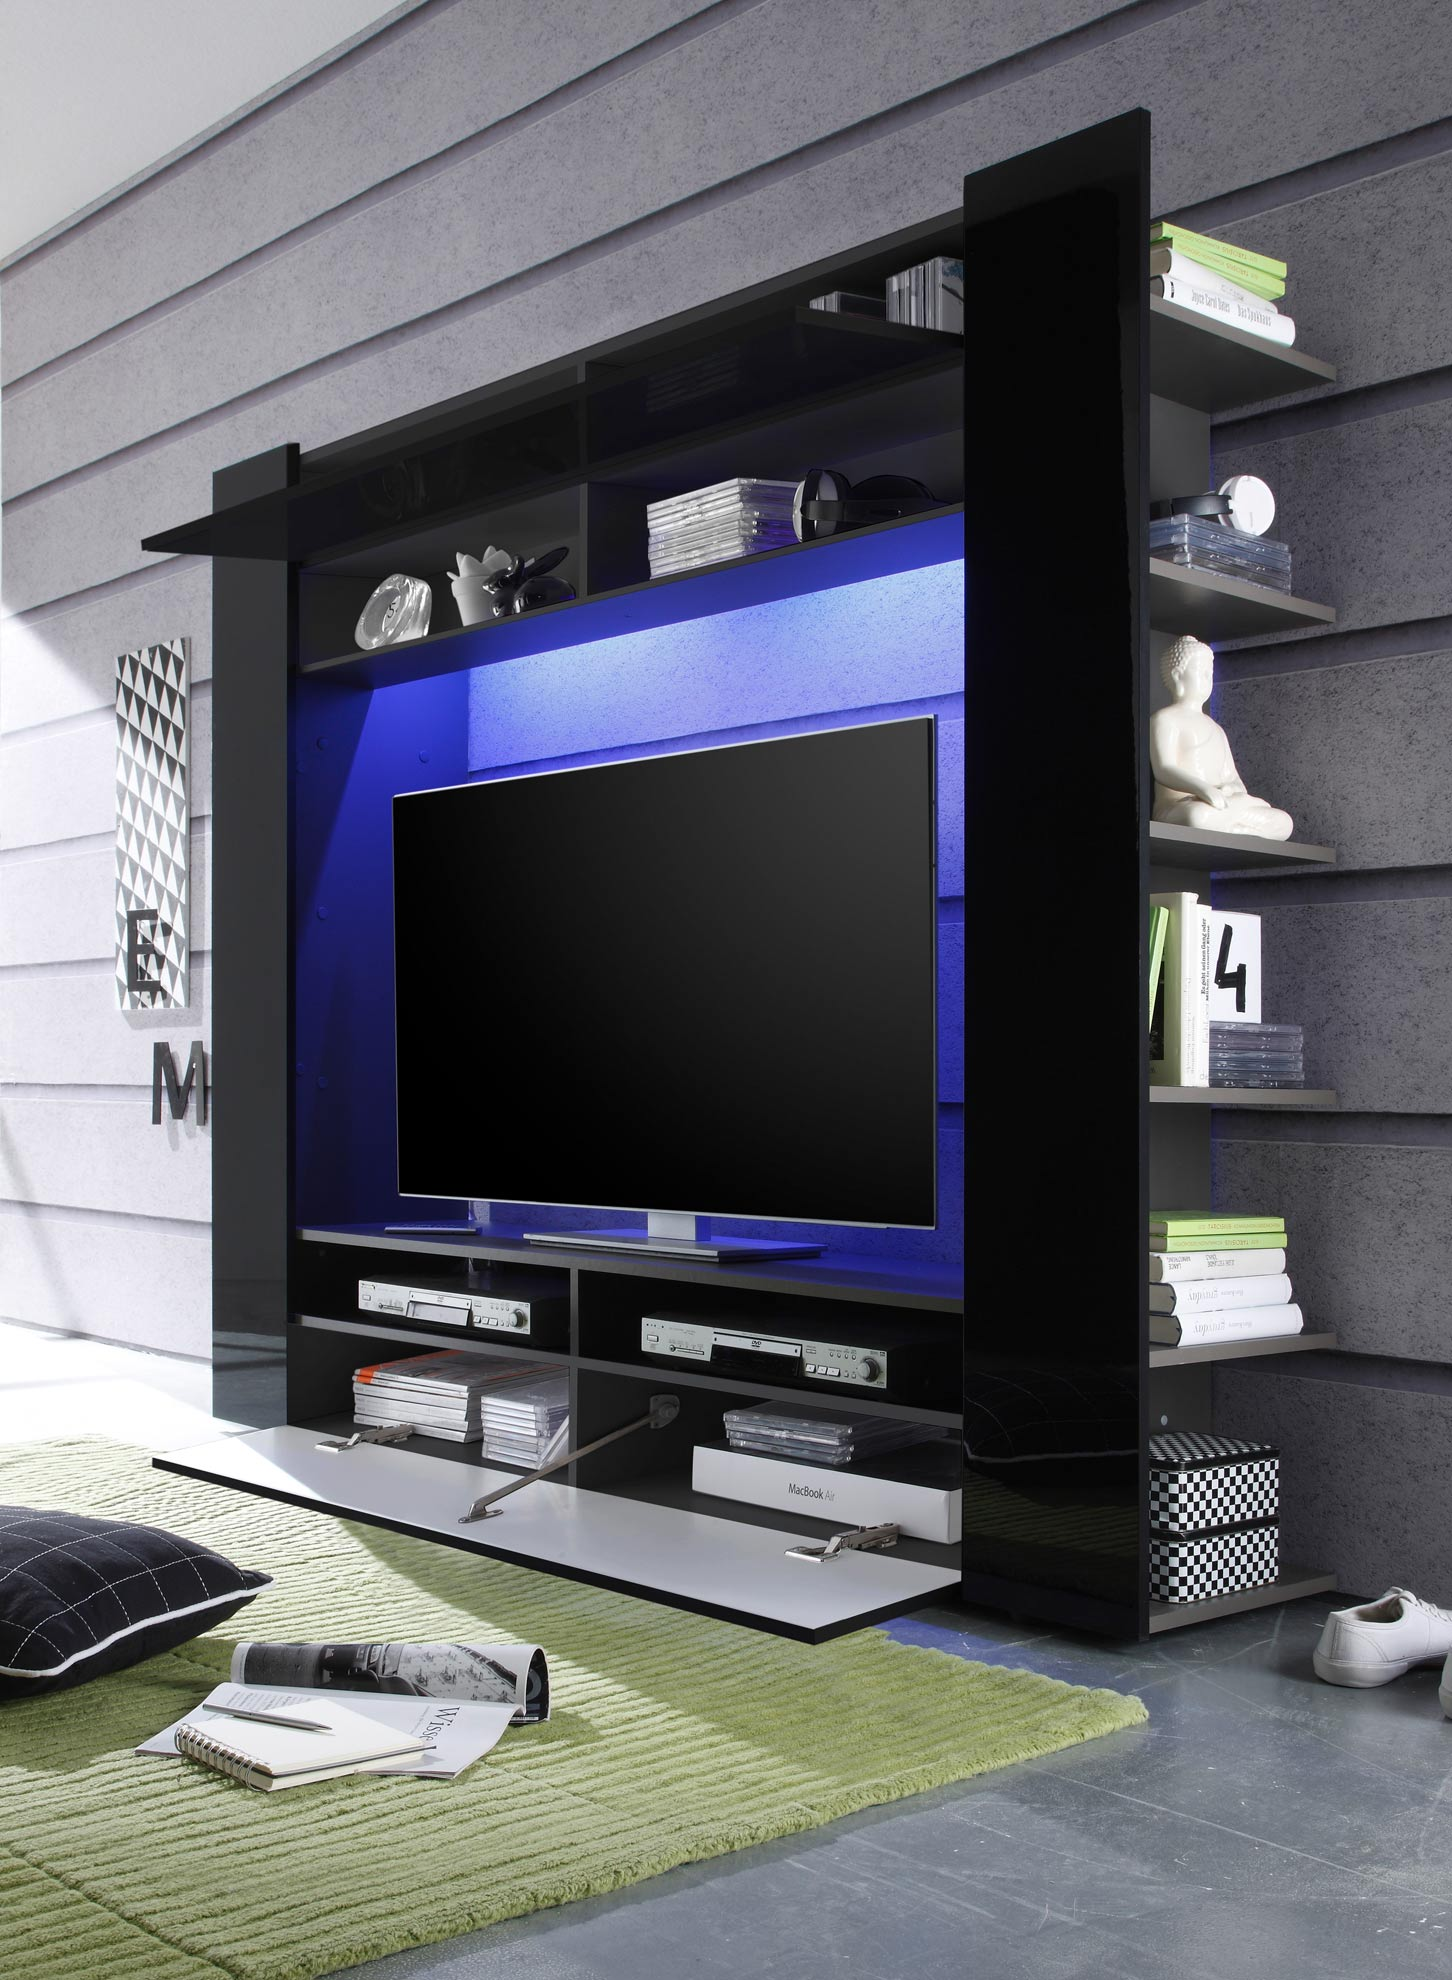 schwarze wohnwand mit tv schrank pictures to pin on pinterest. Black Bedroom Furniture Sets. Home Design Ideas